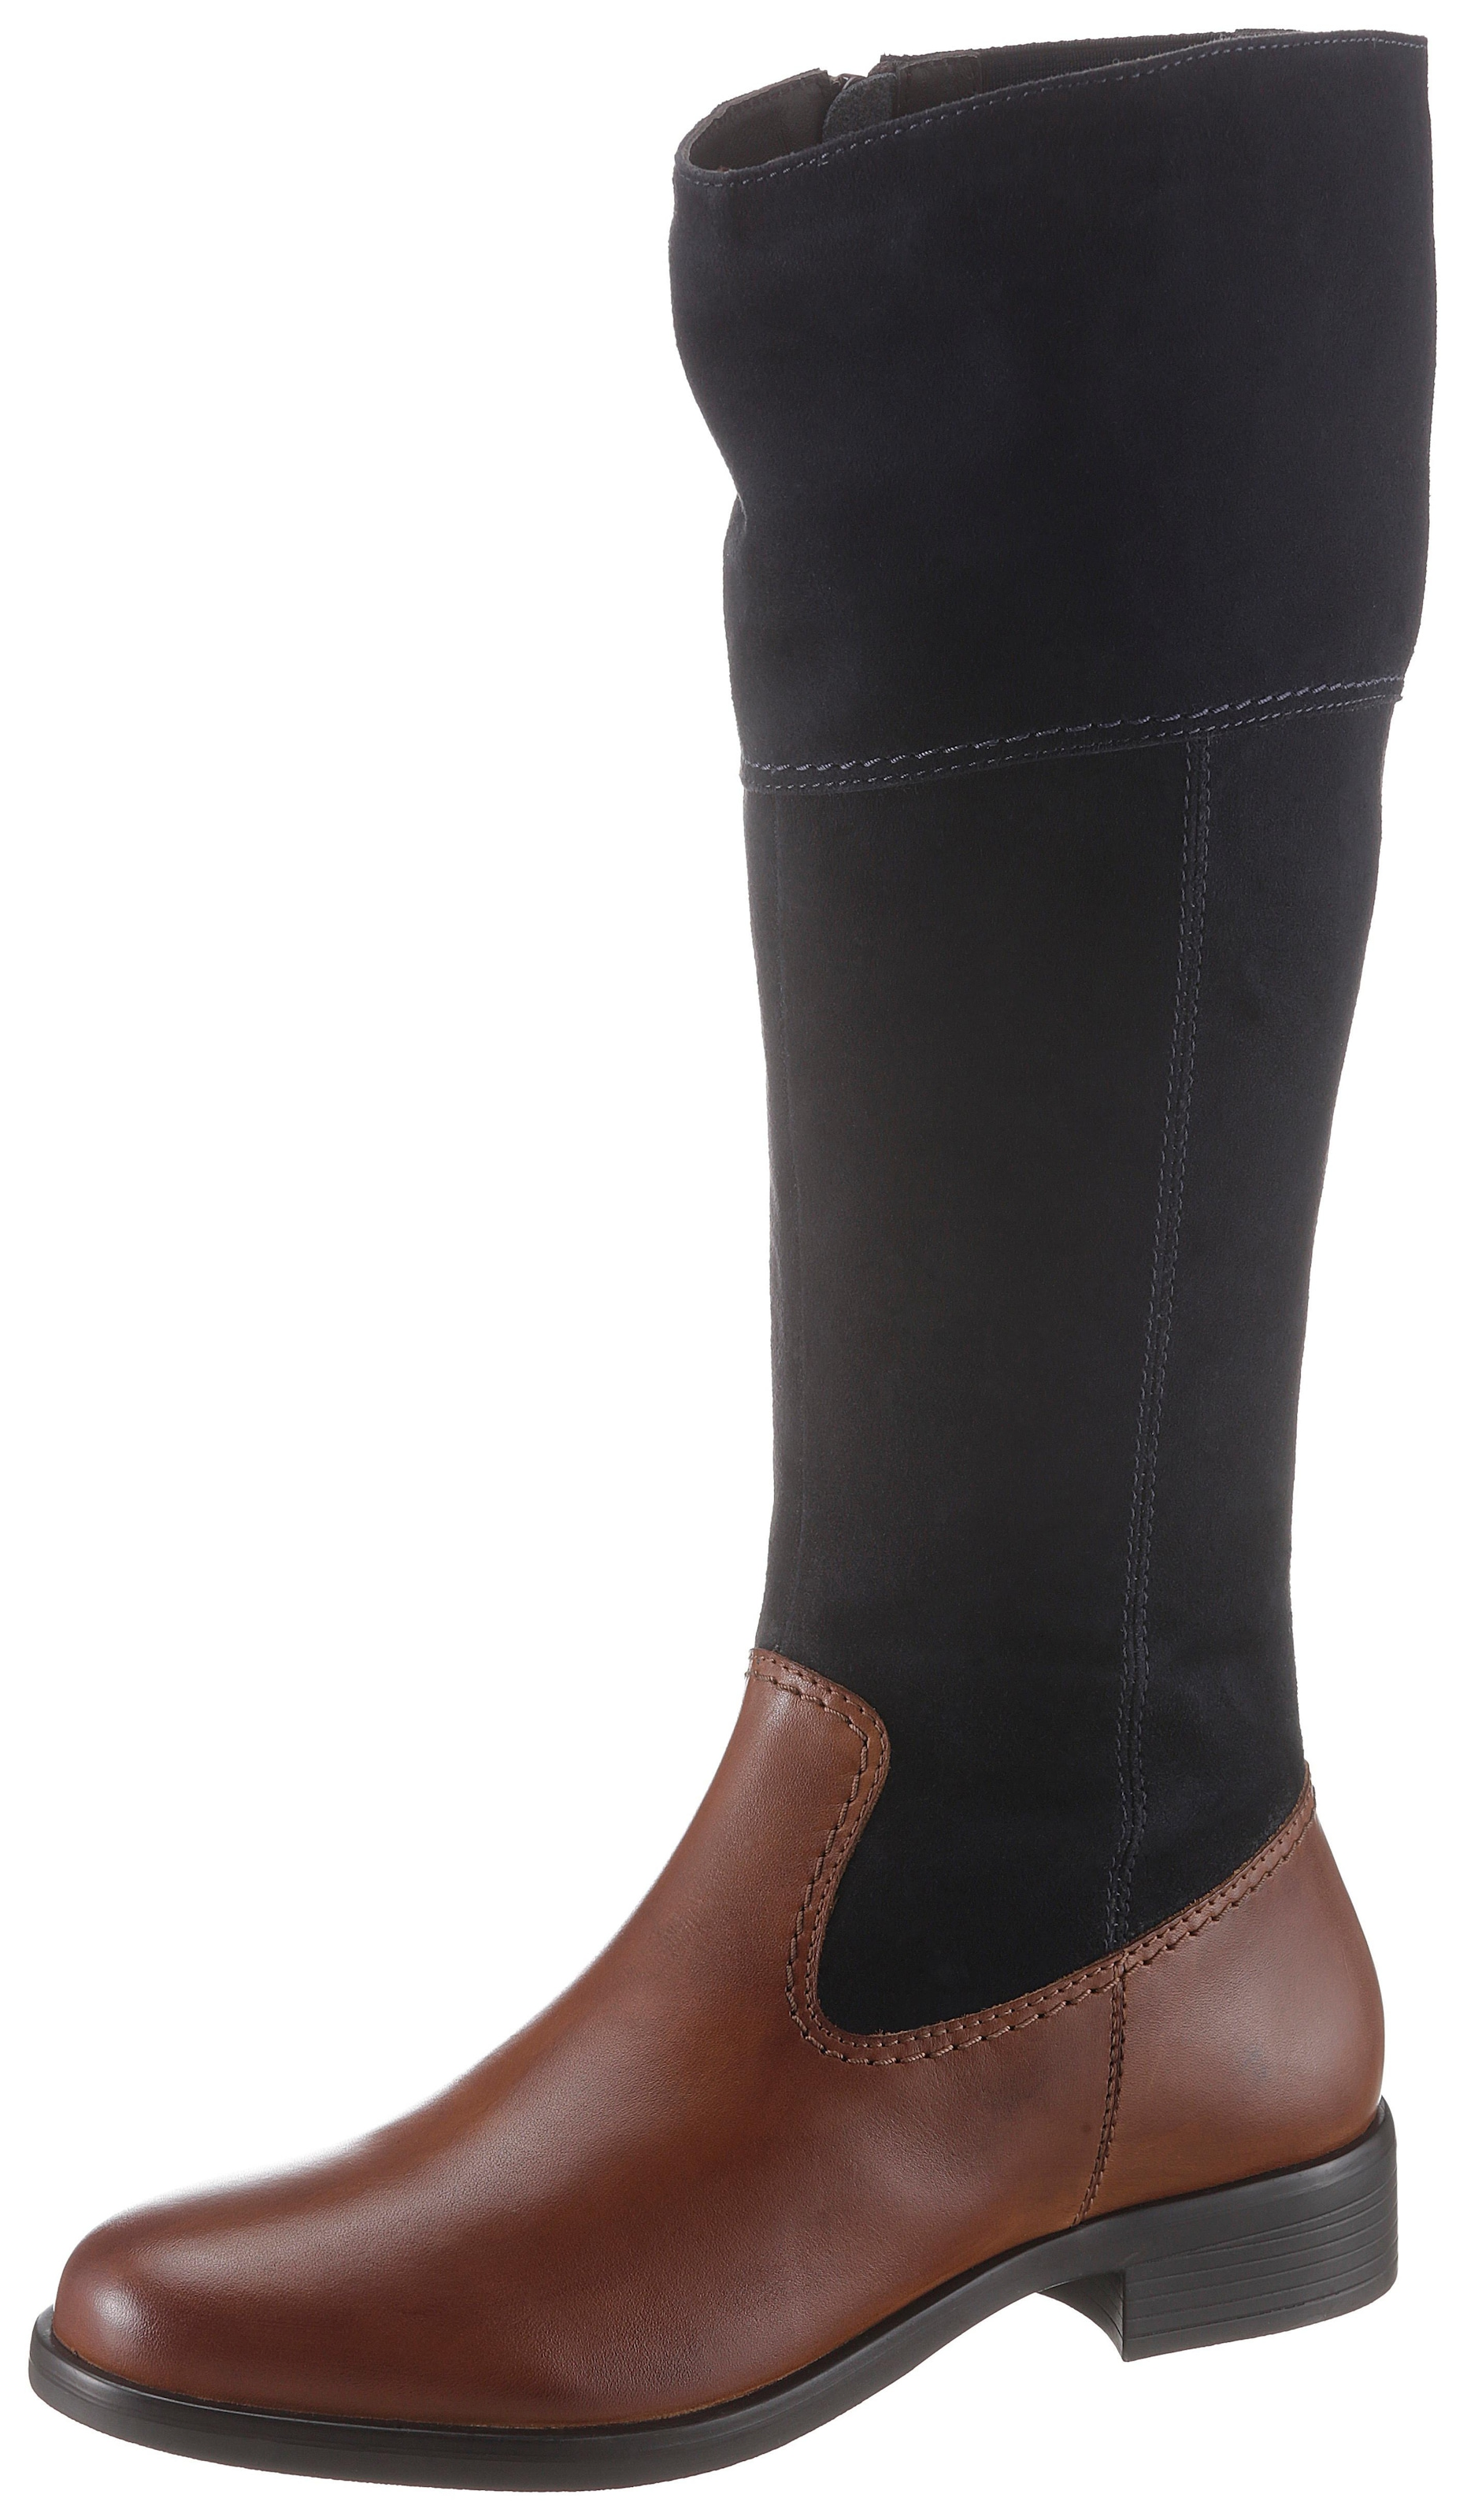 Betty Barclay Shoes Stiefel